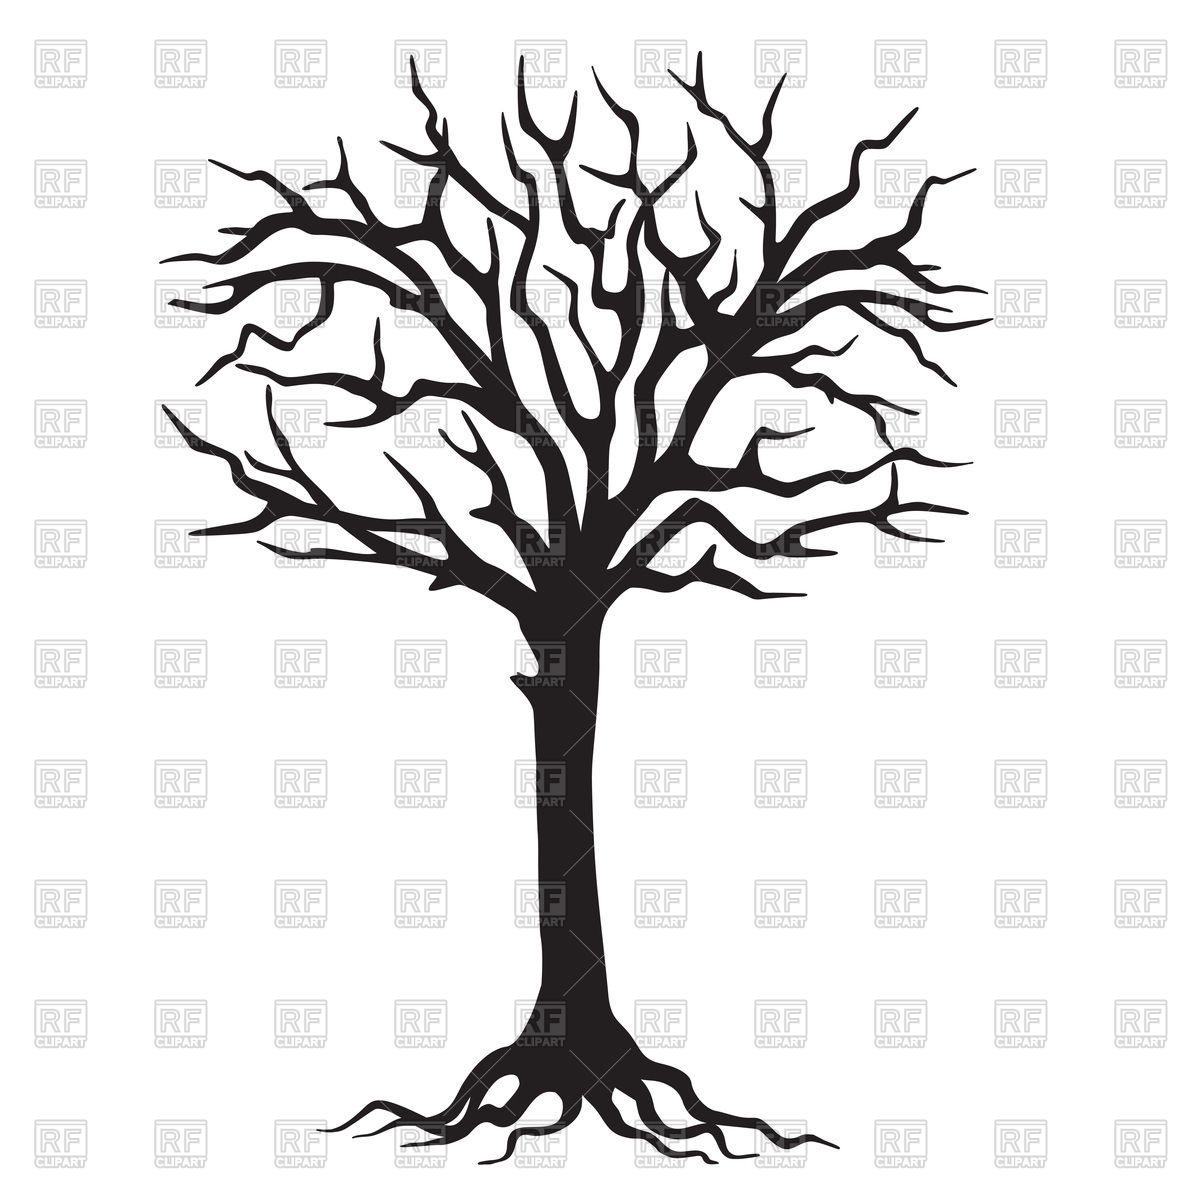 1200x1200 Hand Drawn Black Silhouette Tree With Roots Royalty Free Vector